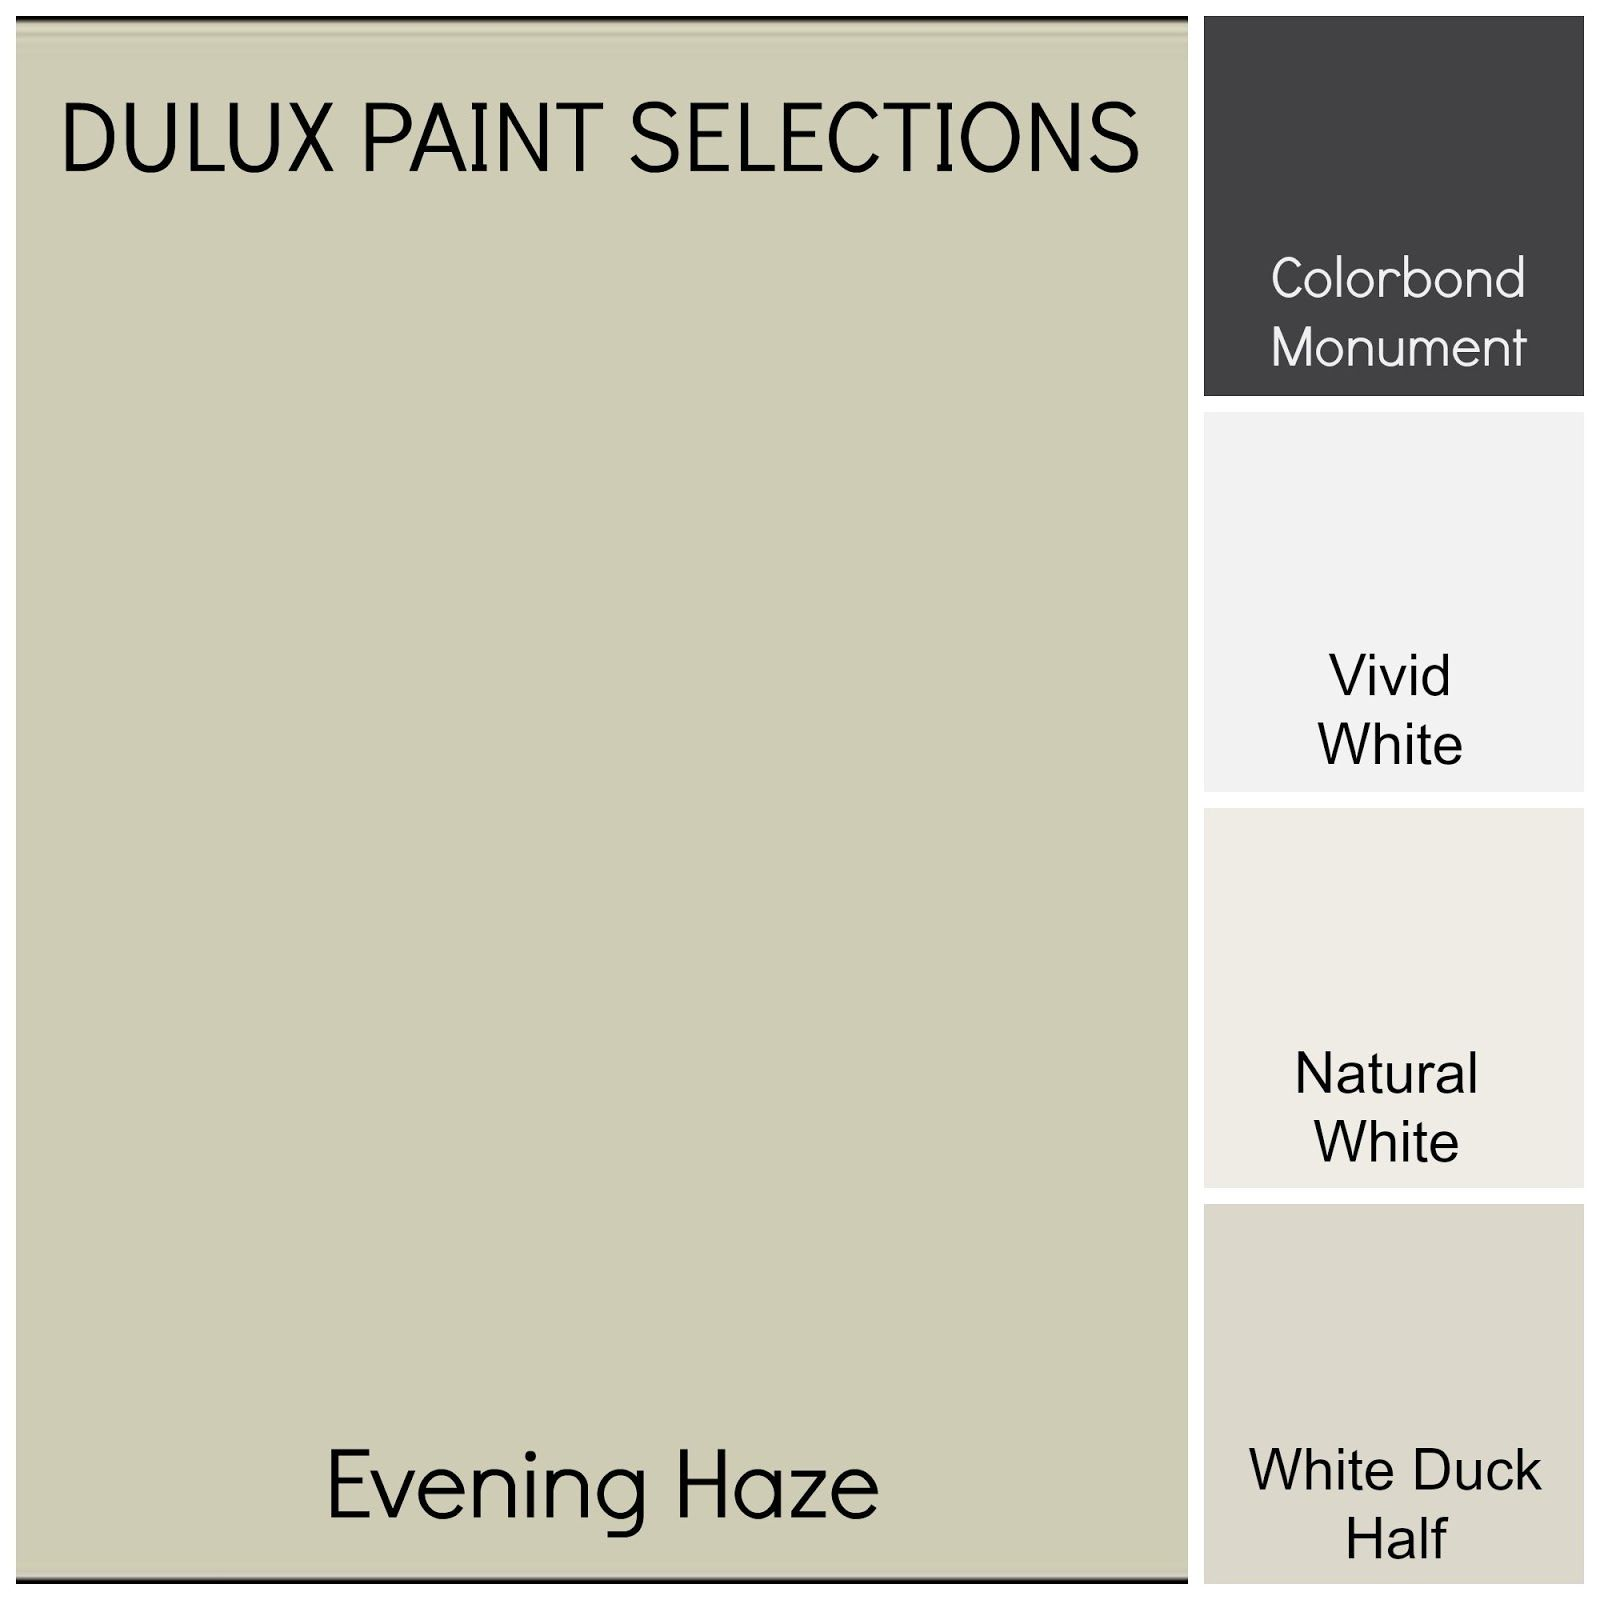 Colorbond roofing colours pictures to pin on pinterest - Natural White Colorbond Monument Vivid White Evening Haze